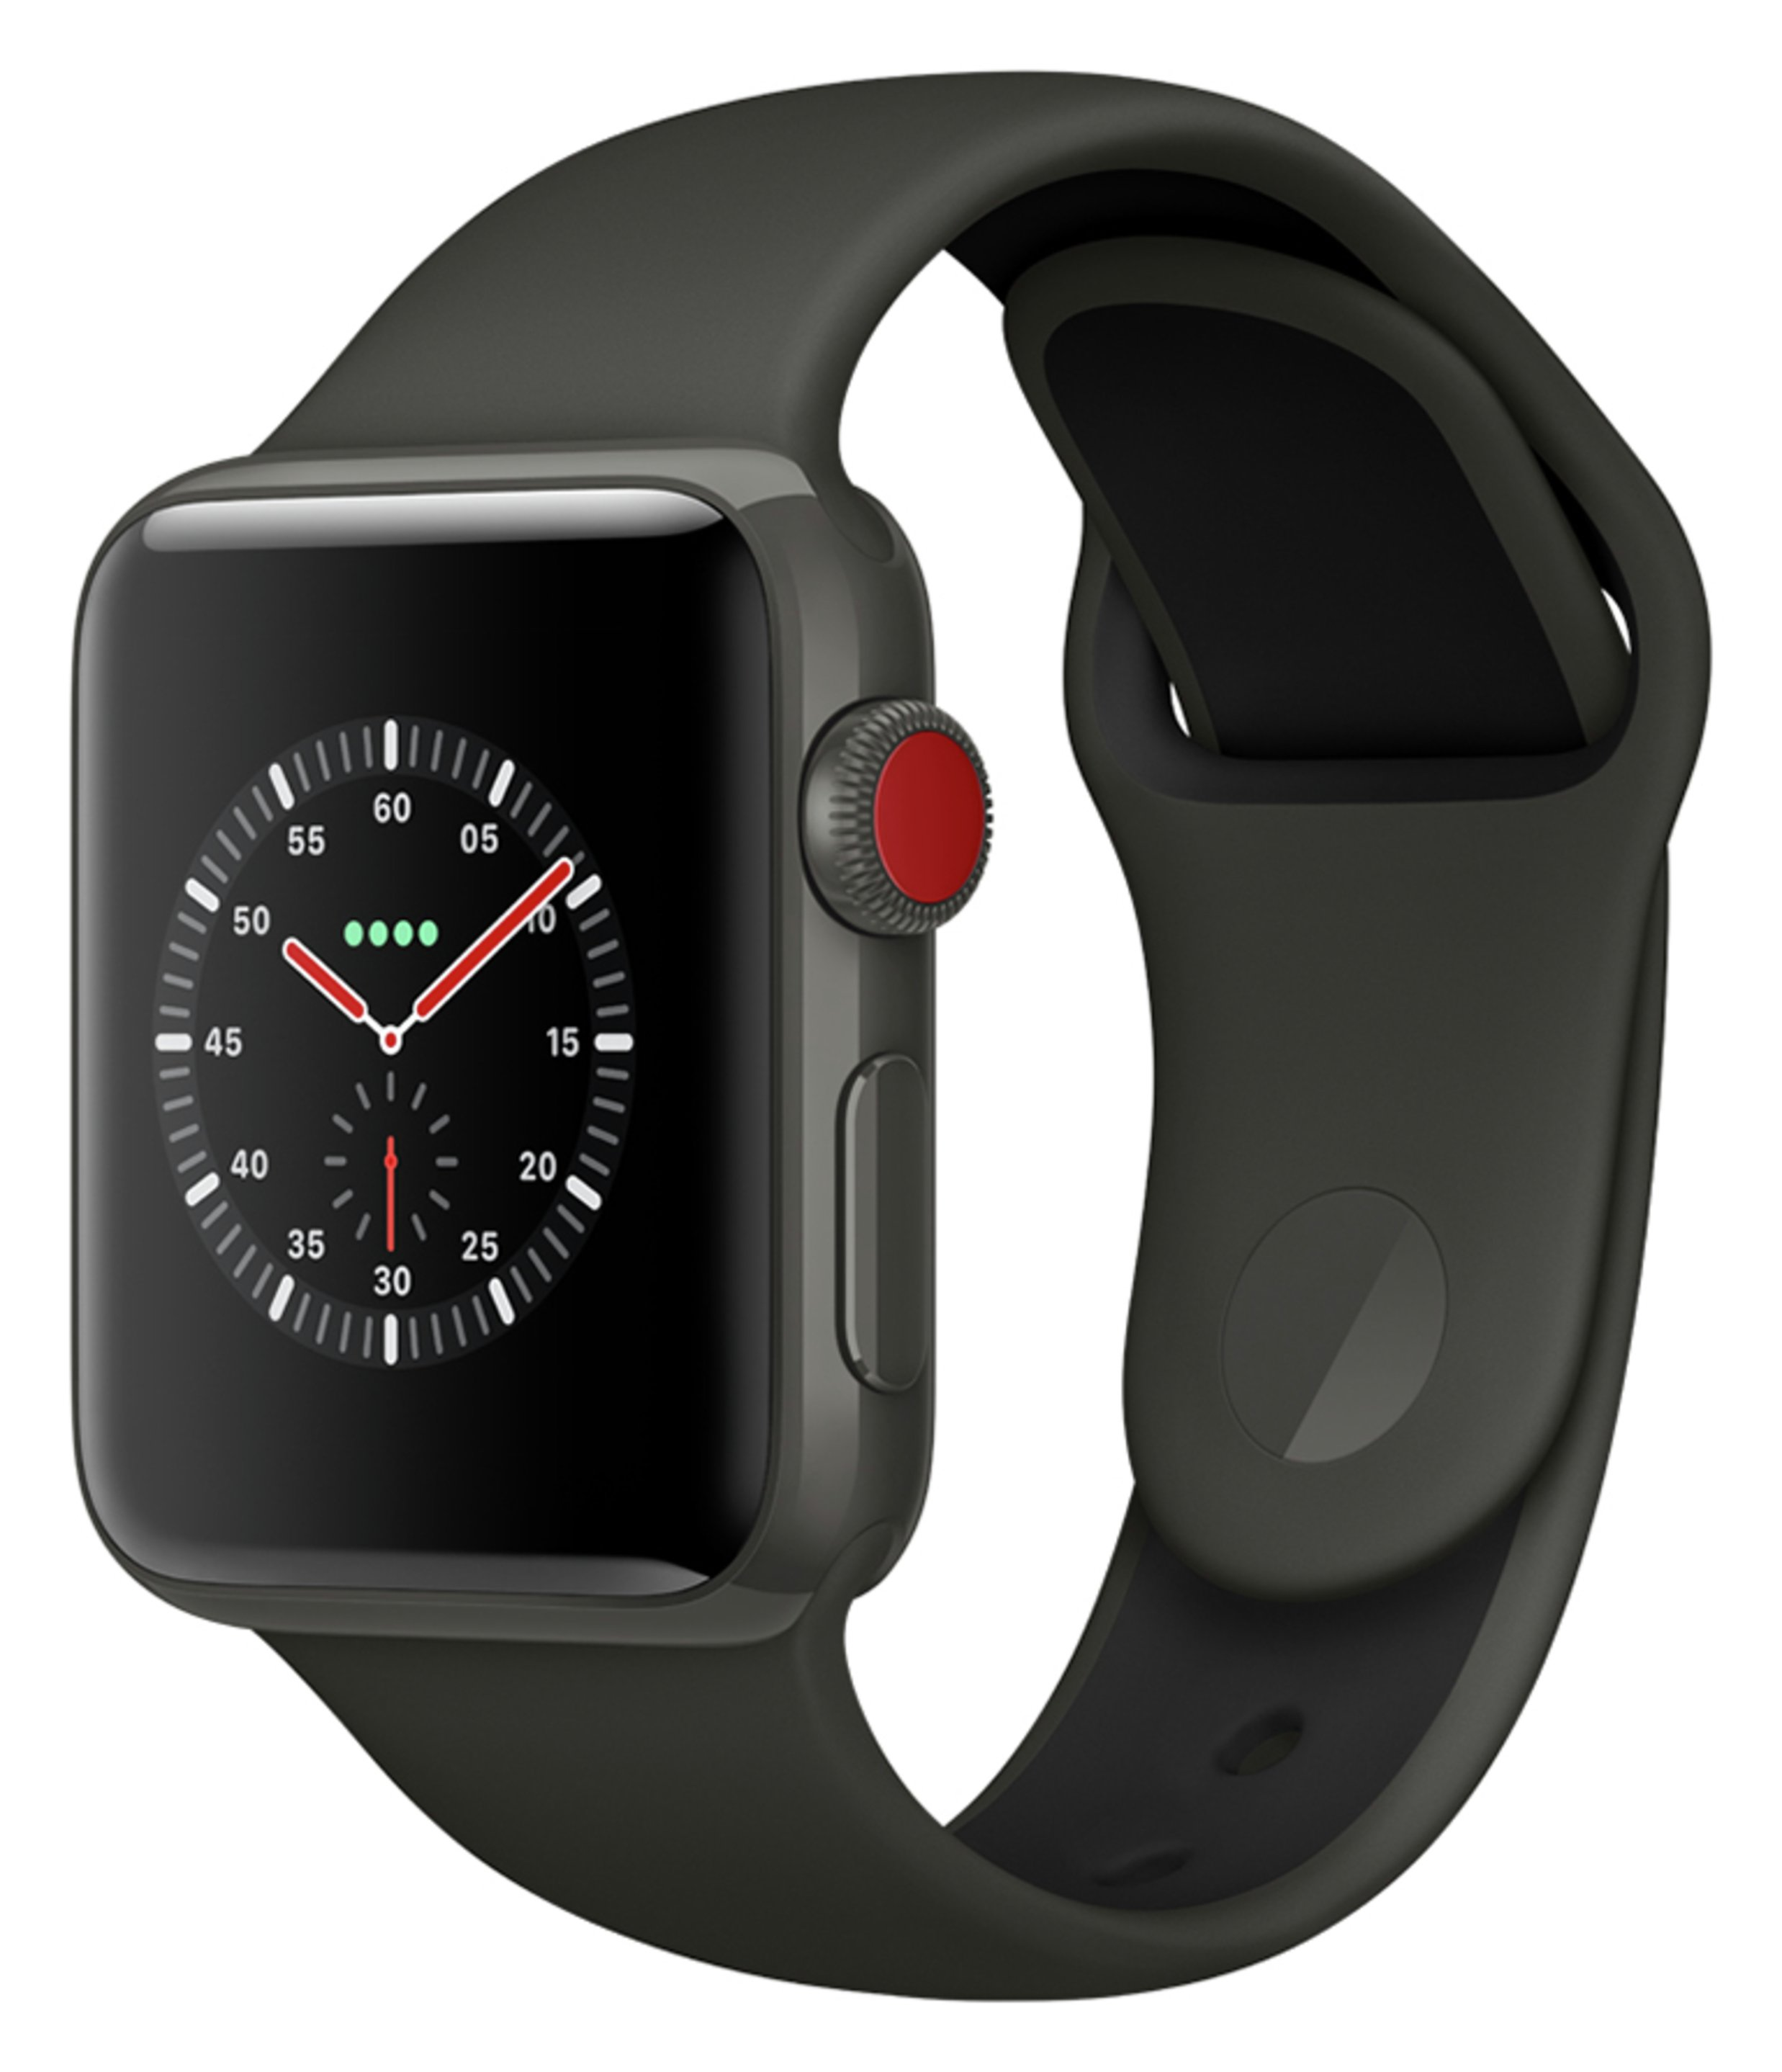 Apple Apple Watch S3 Edition Cellular 42mm - Grey Ceramic